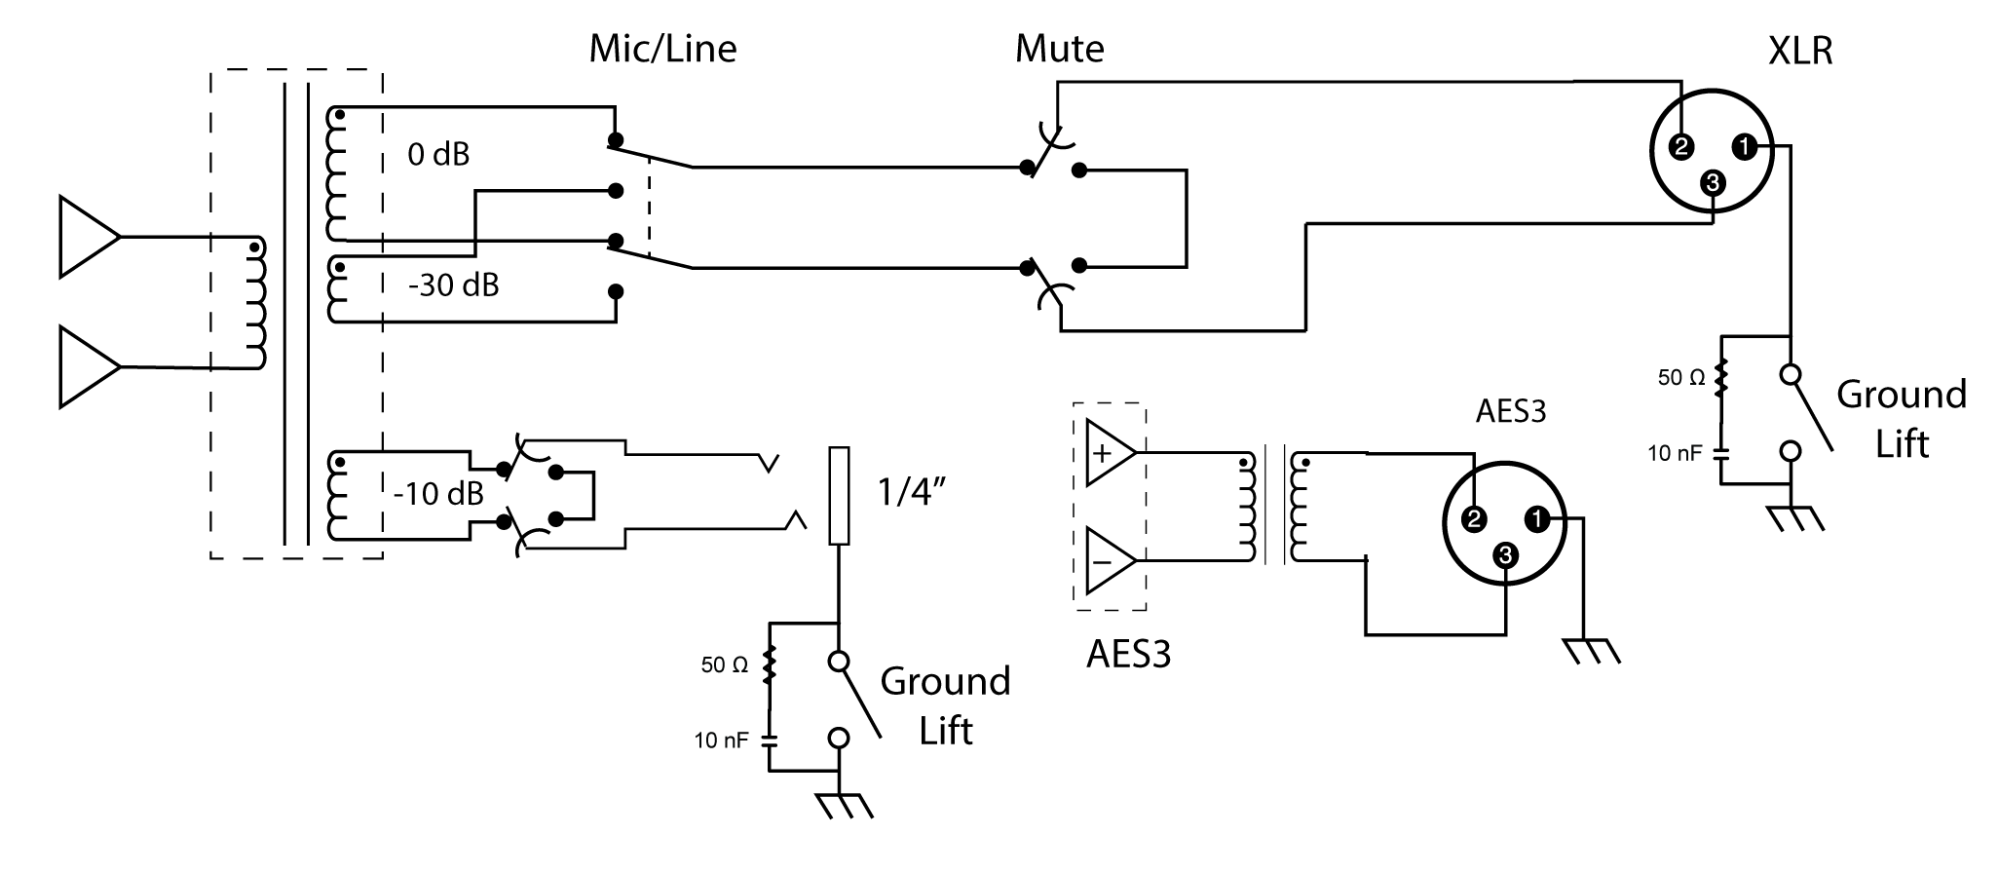 hight resolution of audio output